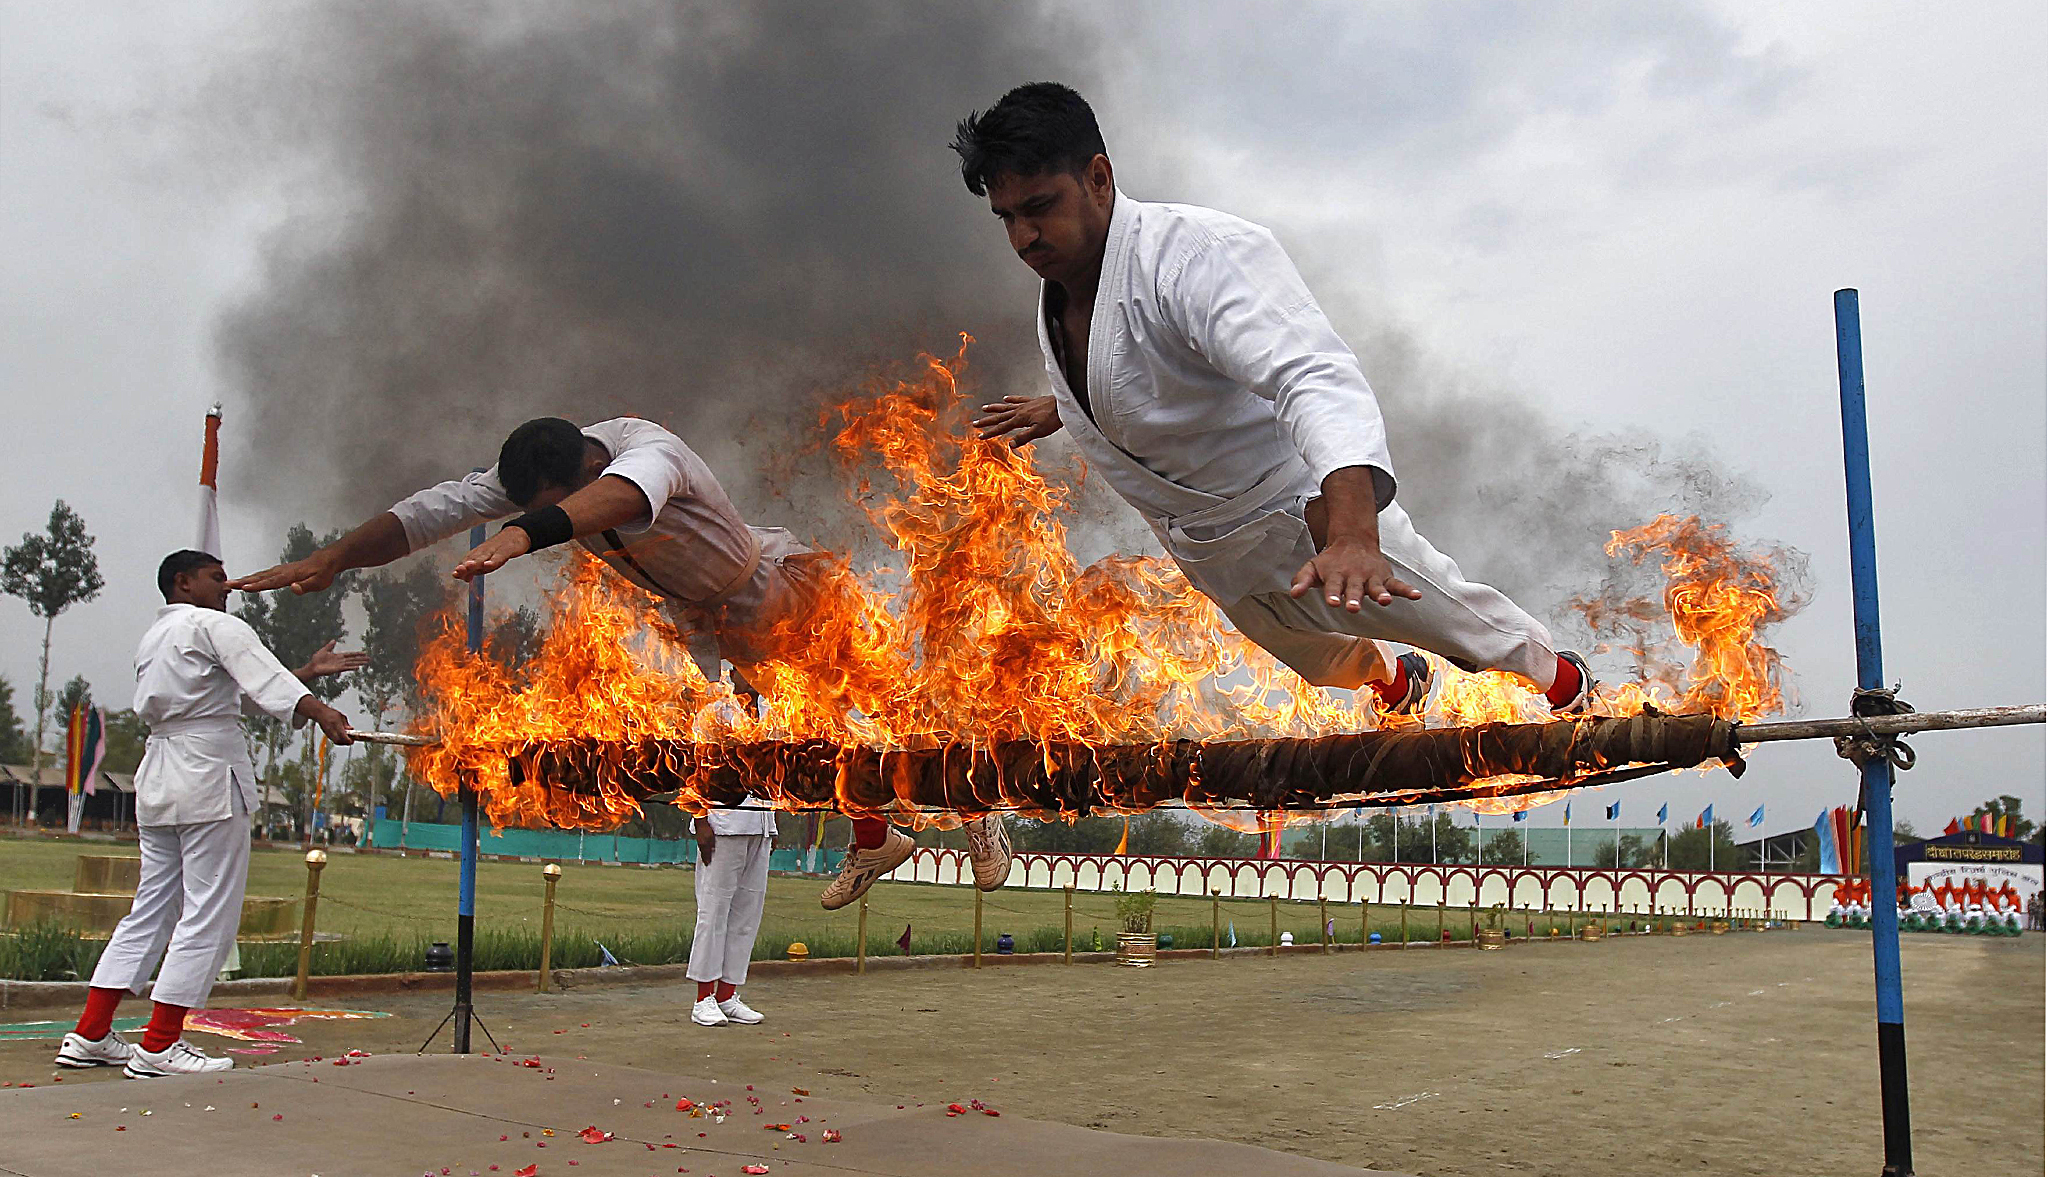 India's CRPF personnel perform a stunt during the passing out parade  in Humhama, on the outskirts of Srinagar...India's Central Reserve Police Force (CRPF) personnel perform a stunt during the passing out parade in Humhama, on the outskirts of Srinagar August 28, 2014. According to authorities from CRPF, 368 new policemen were formally inducted into the force after completing a 44-week rigorous training course and will be deployed in different parts of India. REUTERS/Danish Ismail (INDIAN-ADMINISTERD KASHMIR - Tags: MILITARY SOCIETY TPX IMAGES OF THE DAY)